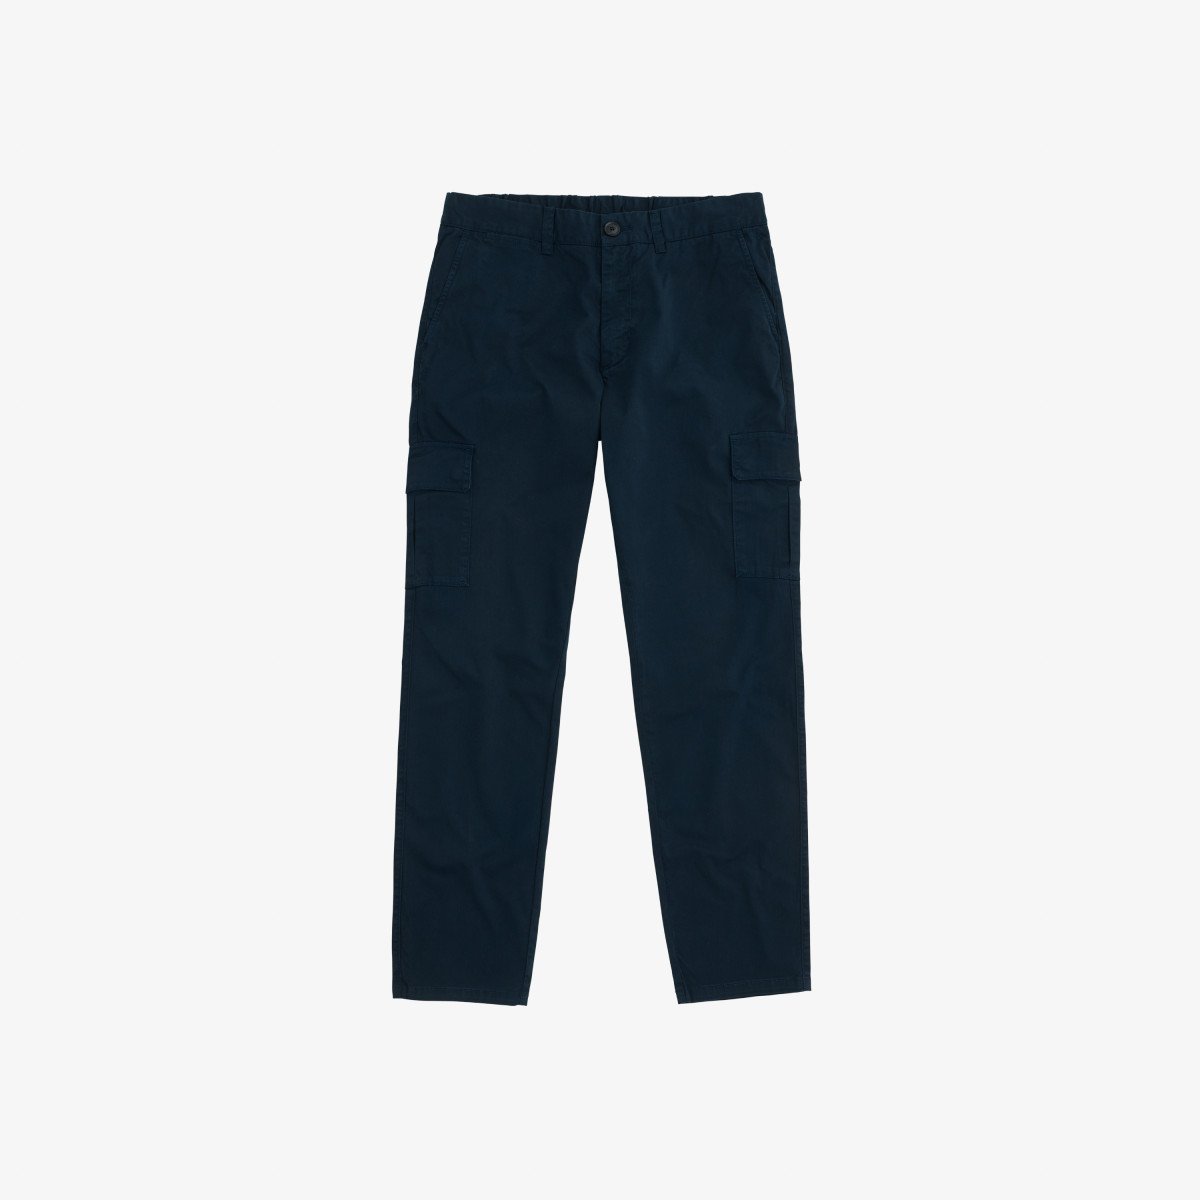 PANT MILITARY STRAIGHT BOTTOM NAVY BLUE